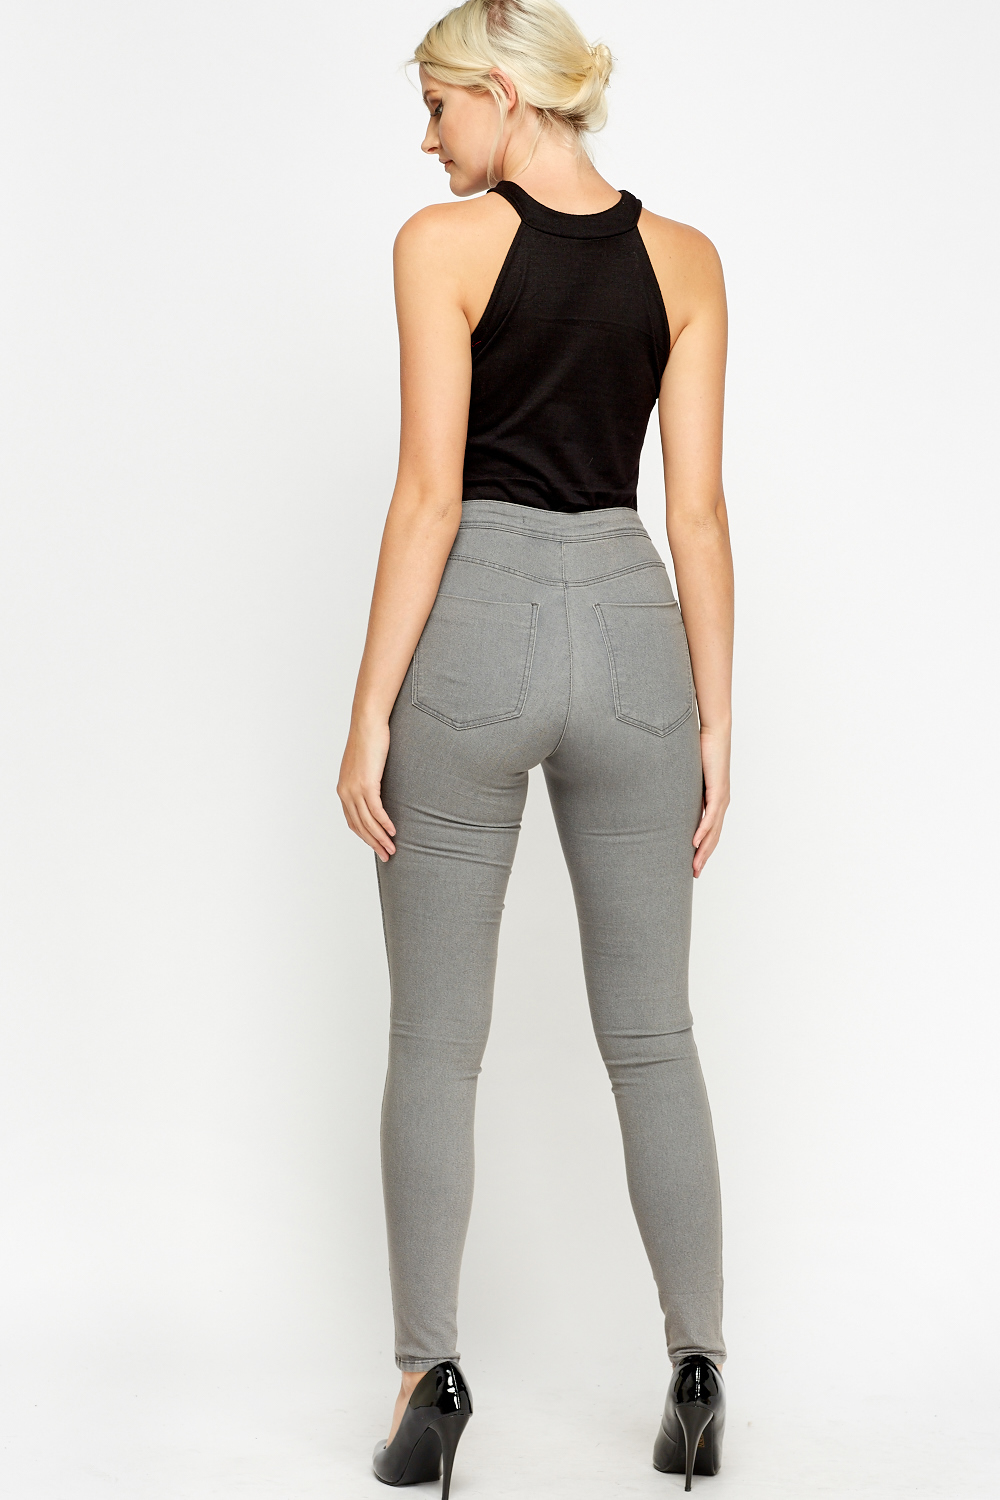 Womens High Waist Skinny Jeans